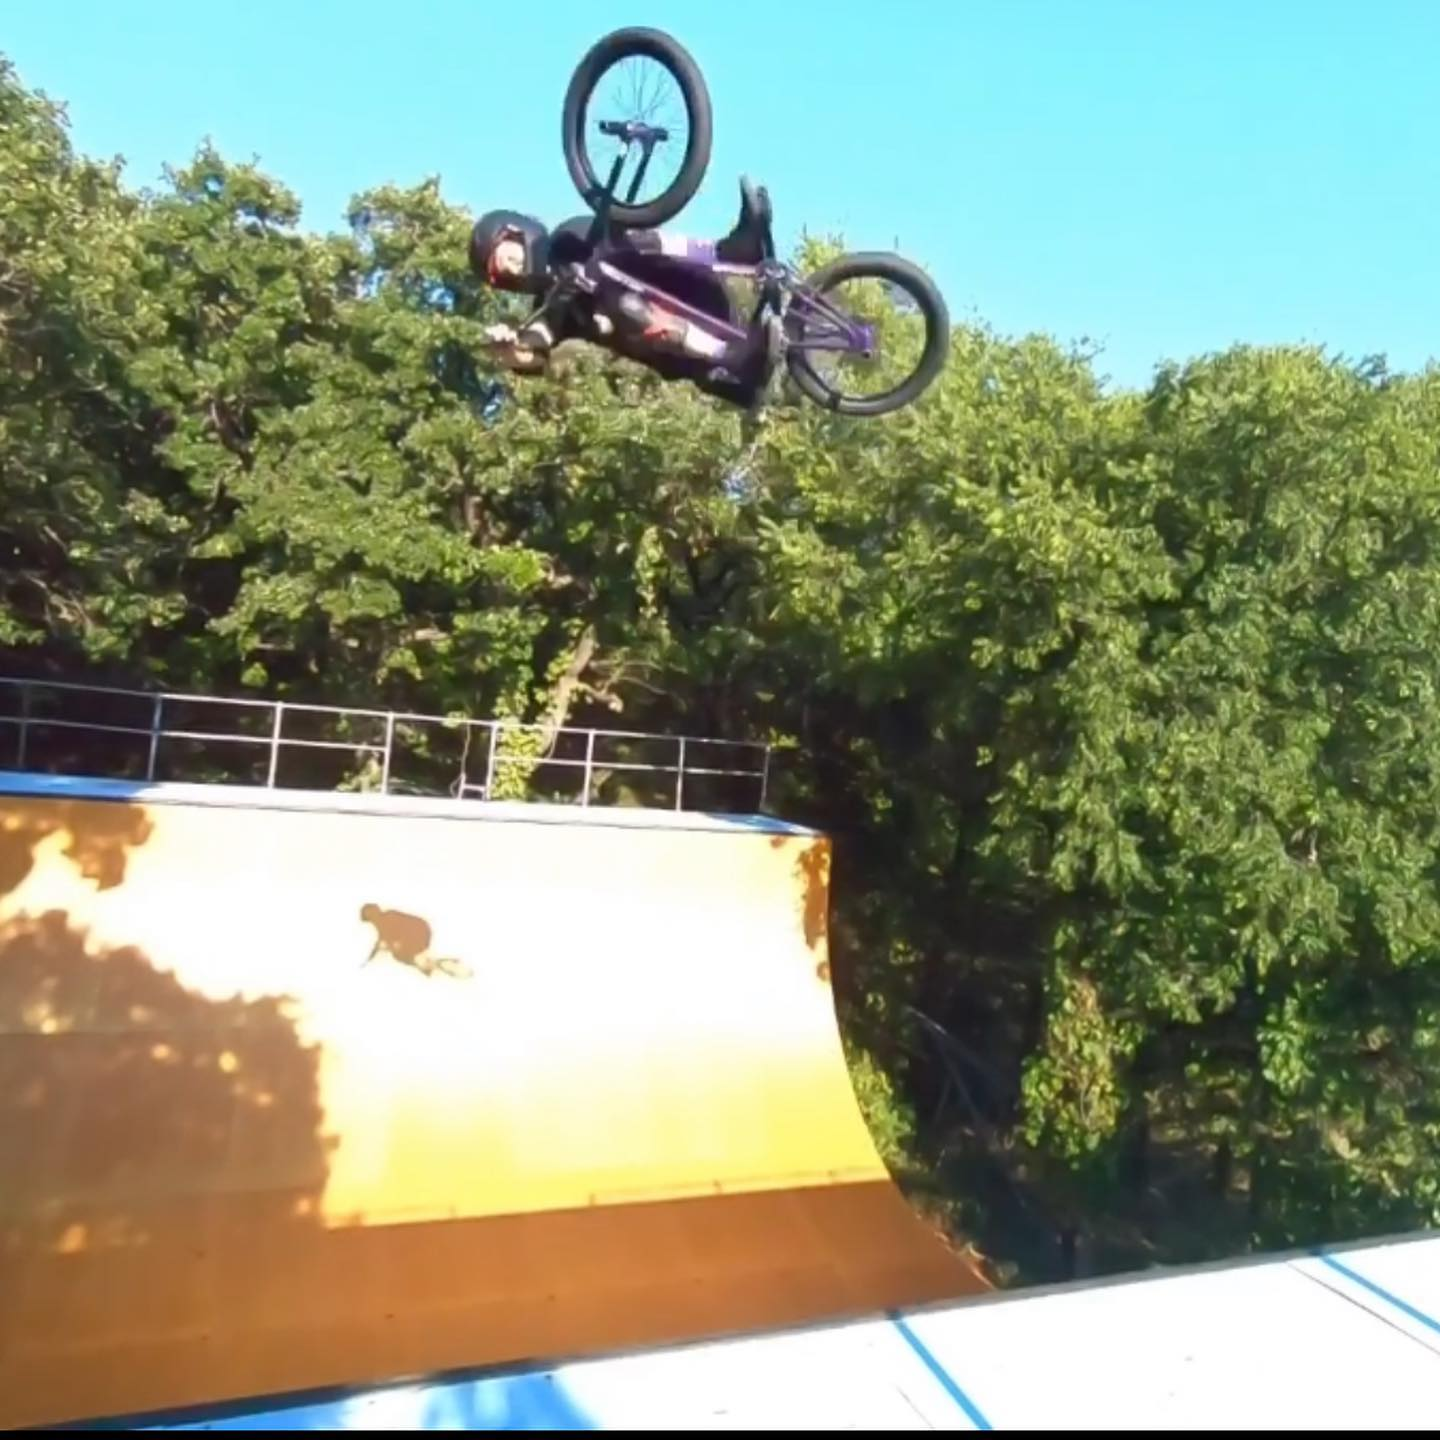 I didn't ride today.  Too hot/humid.  But here are some stills from Tues. 6:30 sessions get good shadows #backyardsess435